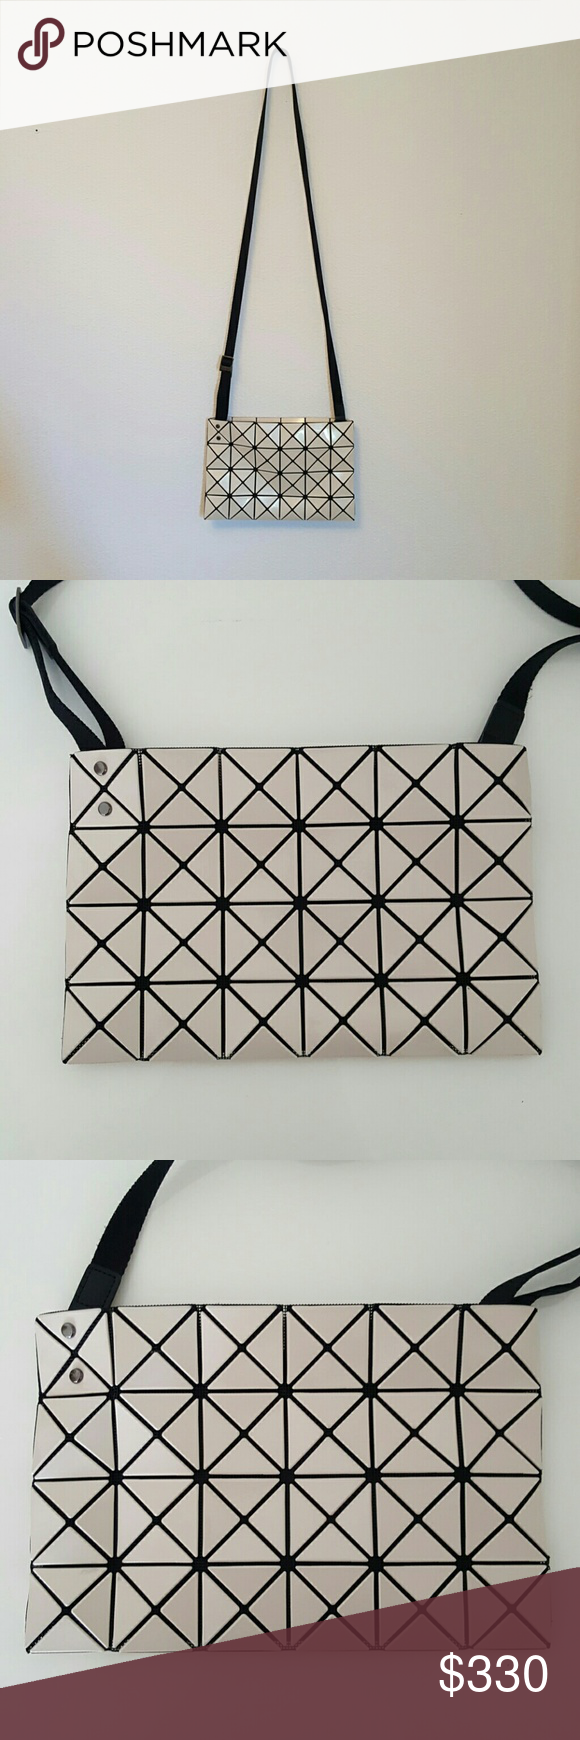 Selling this ISSEY MIYAKE BAO BAO Crossbody Bag on Poshmark! My username  is  canne12 65a55a8d6c